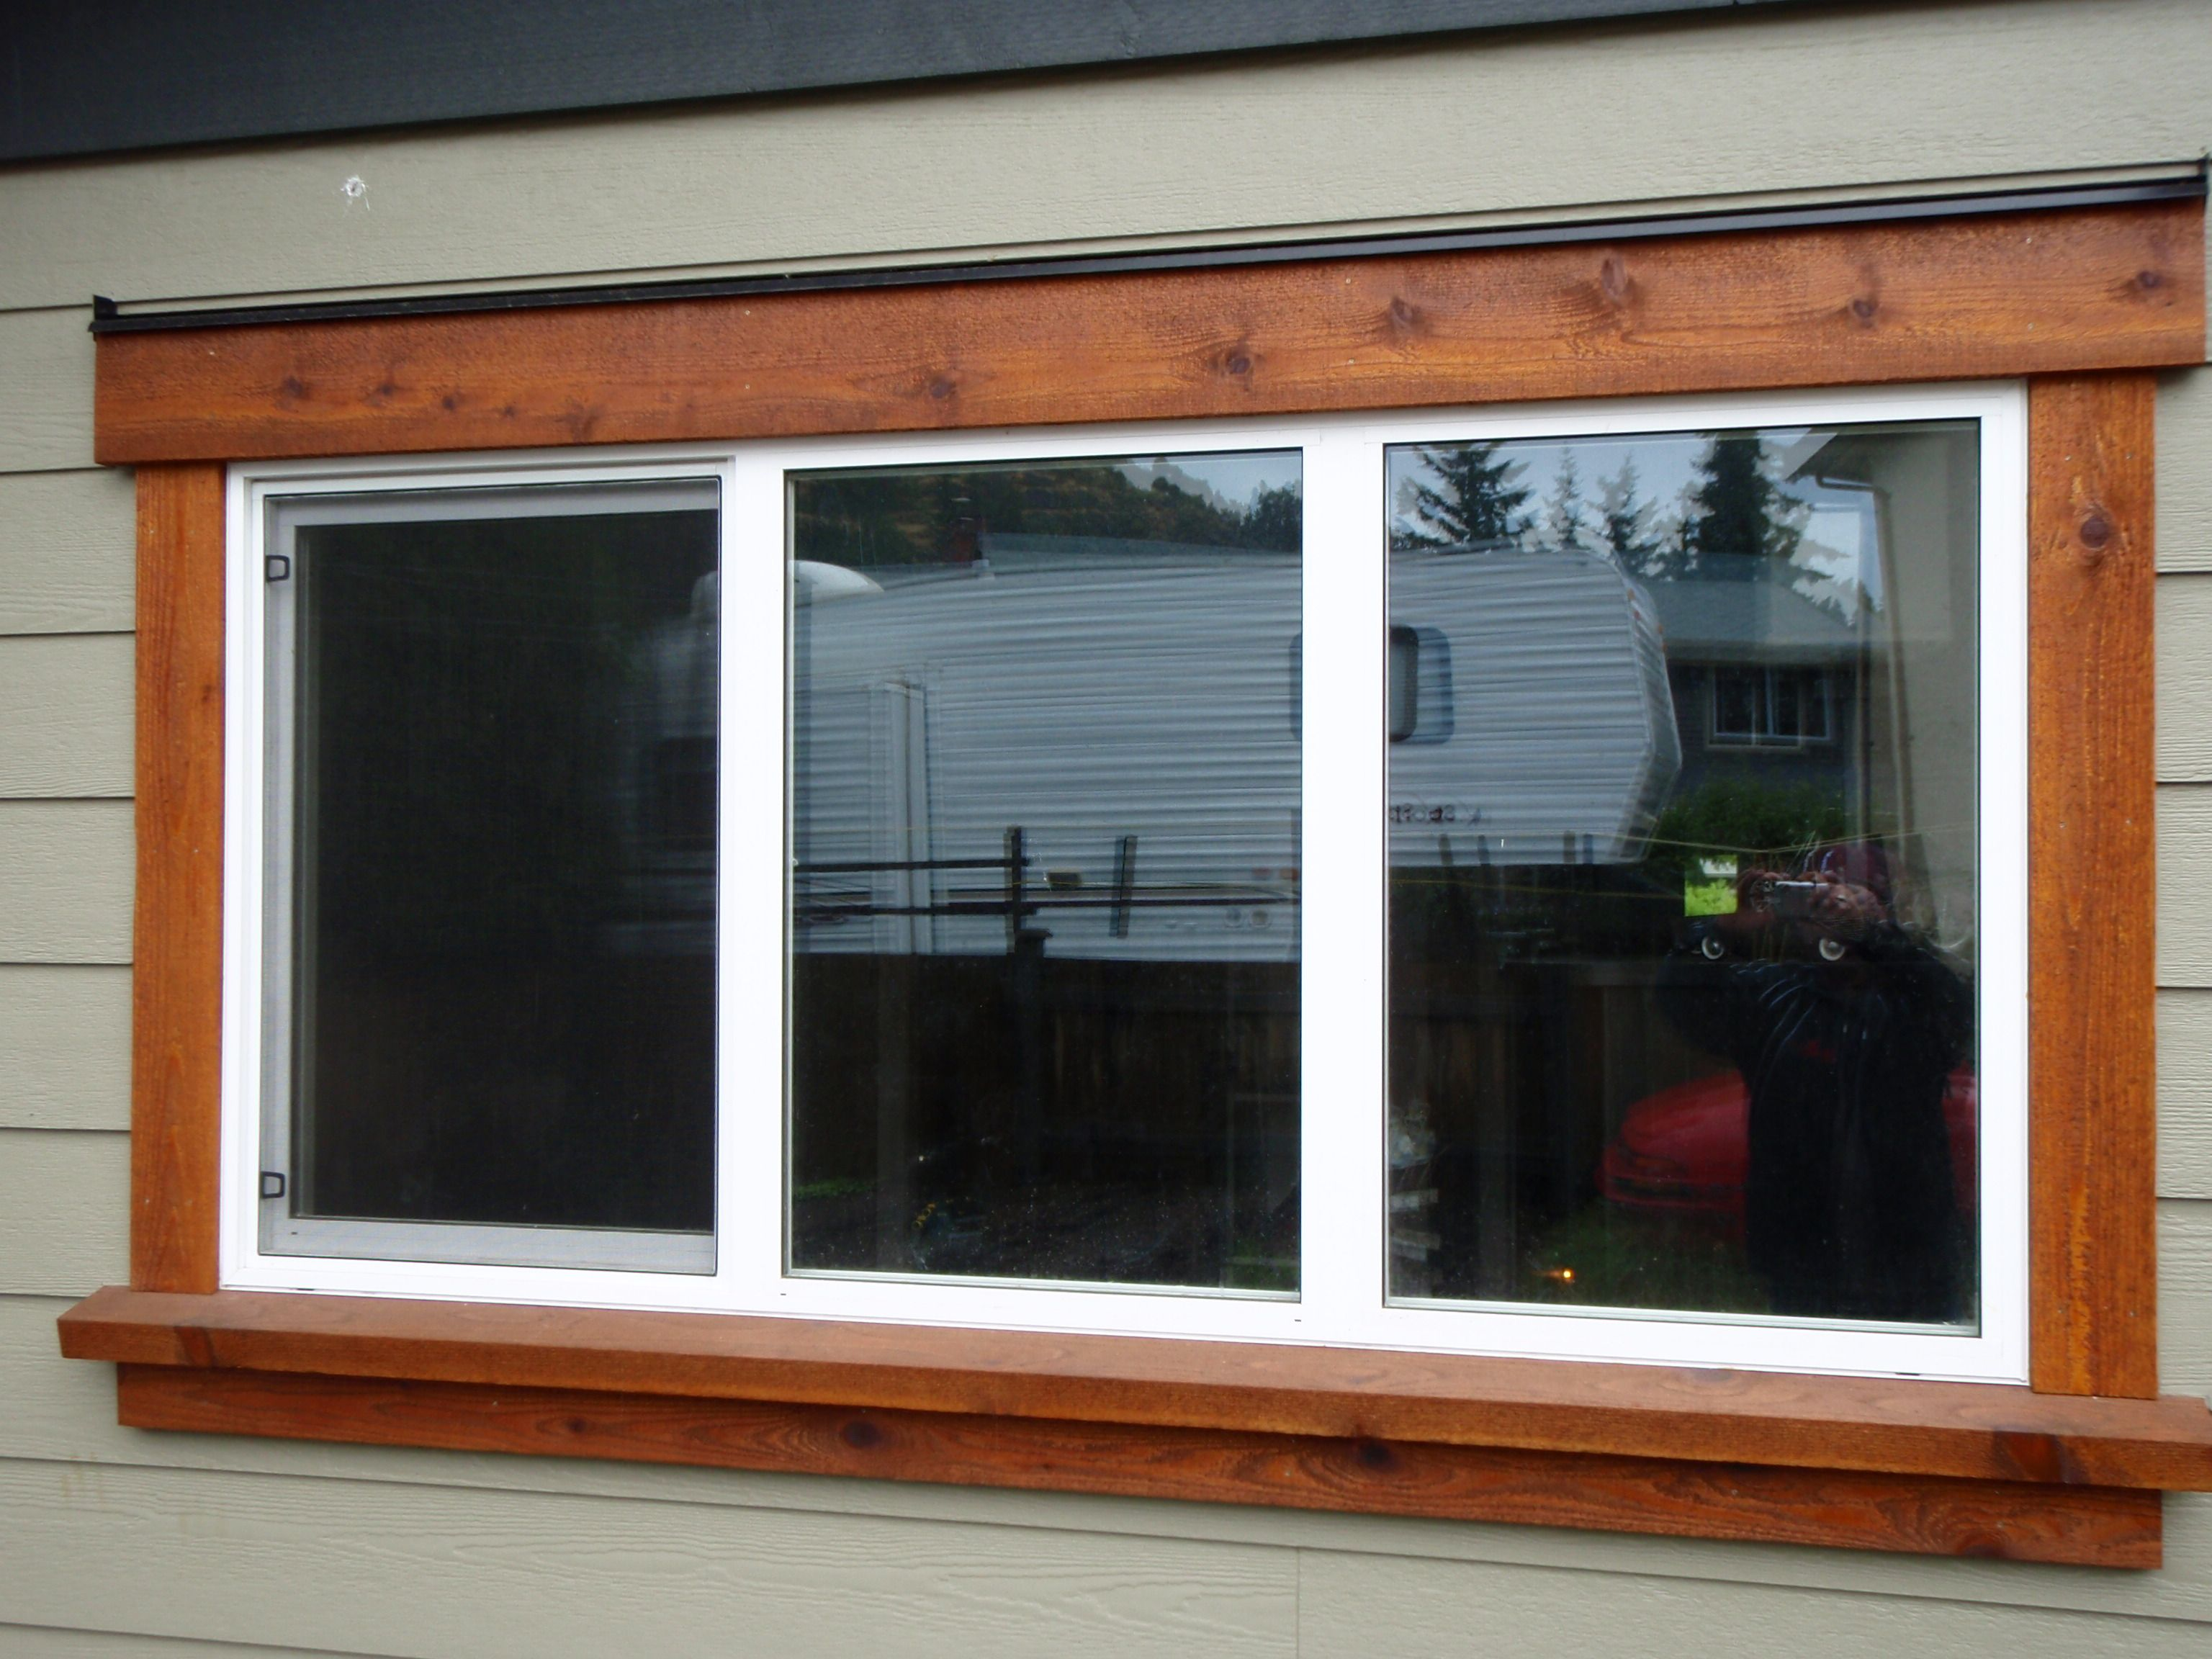 Portrayal of outside window trim classic finishing idea for perfect home plan from traditional to